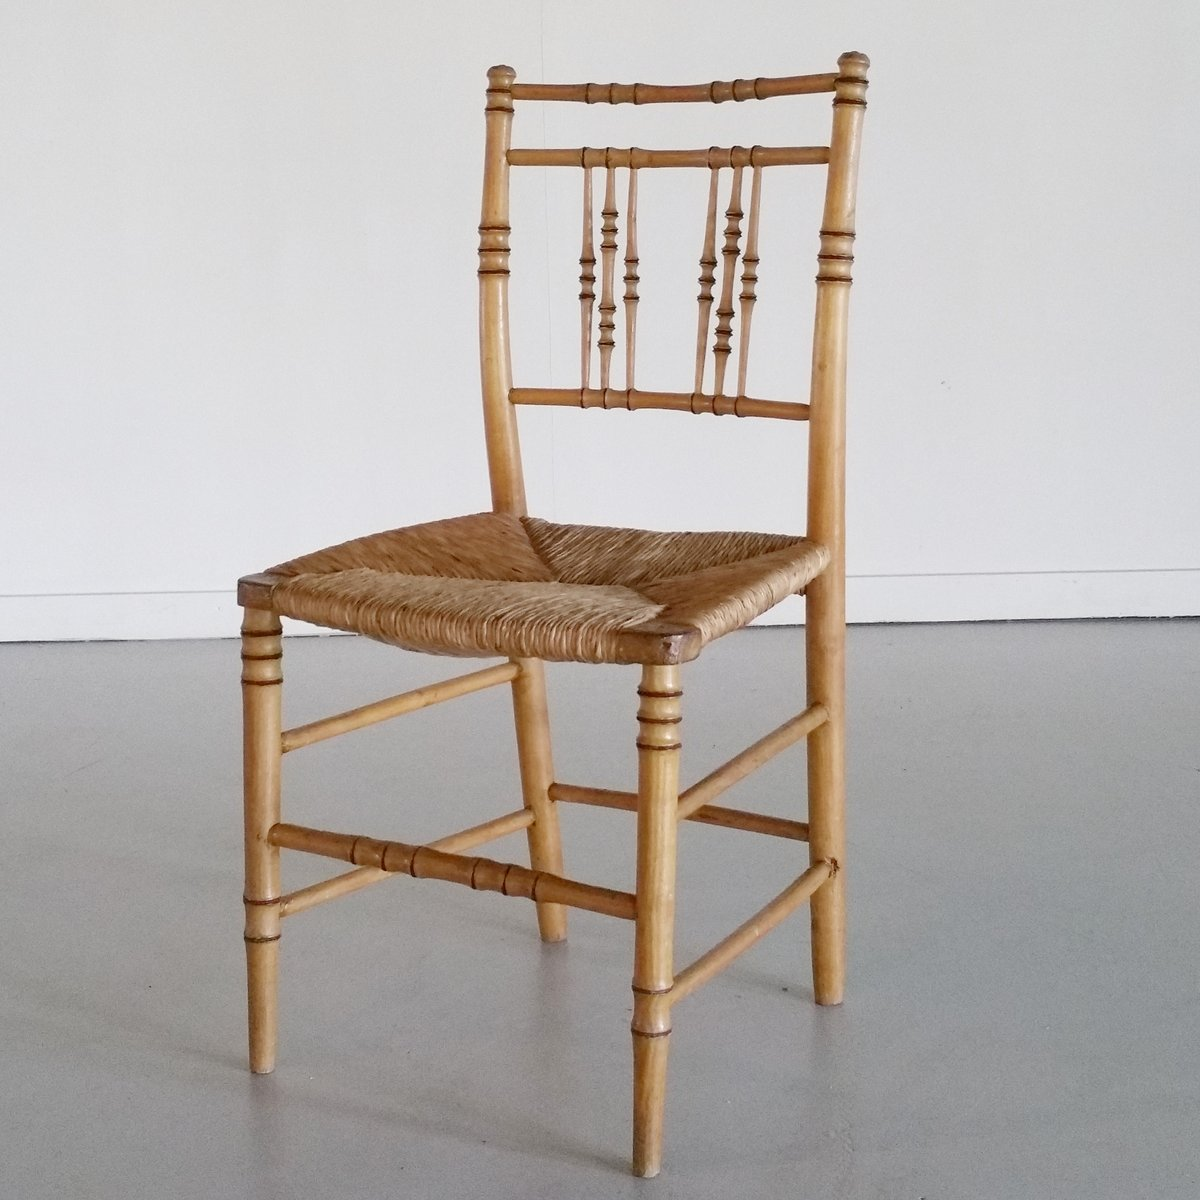 Bamboo Chairs 19th Century Faux Bamboo Chairs Set Of 6